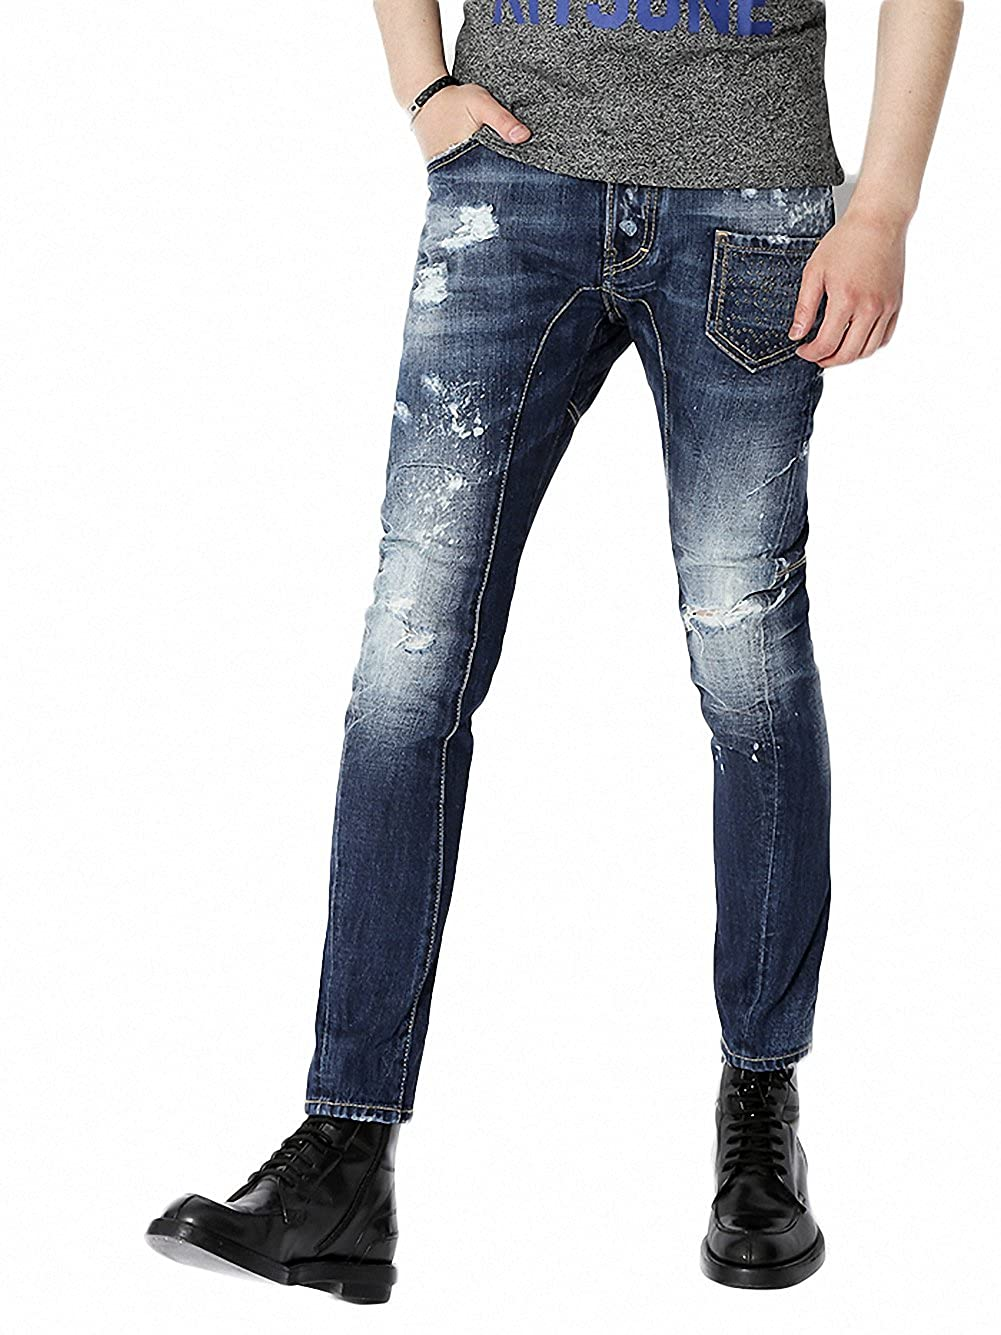 (ディースクエアード) DSQUARED2 Multi-stud front pocket Leather patch logo patch Man Jeans Leather (Tidy Biker fit) Man Jean 男性ジャン 74LA0787 S30309 470 (並行輸入品) B01GB75032   44, アステッドホーム:e4315a10 --- rakuten-apps.jp